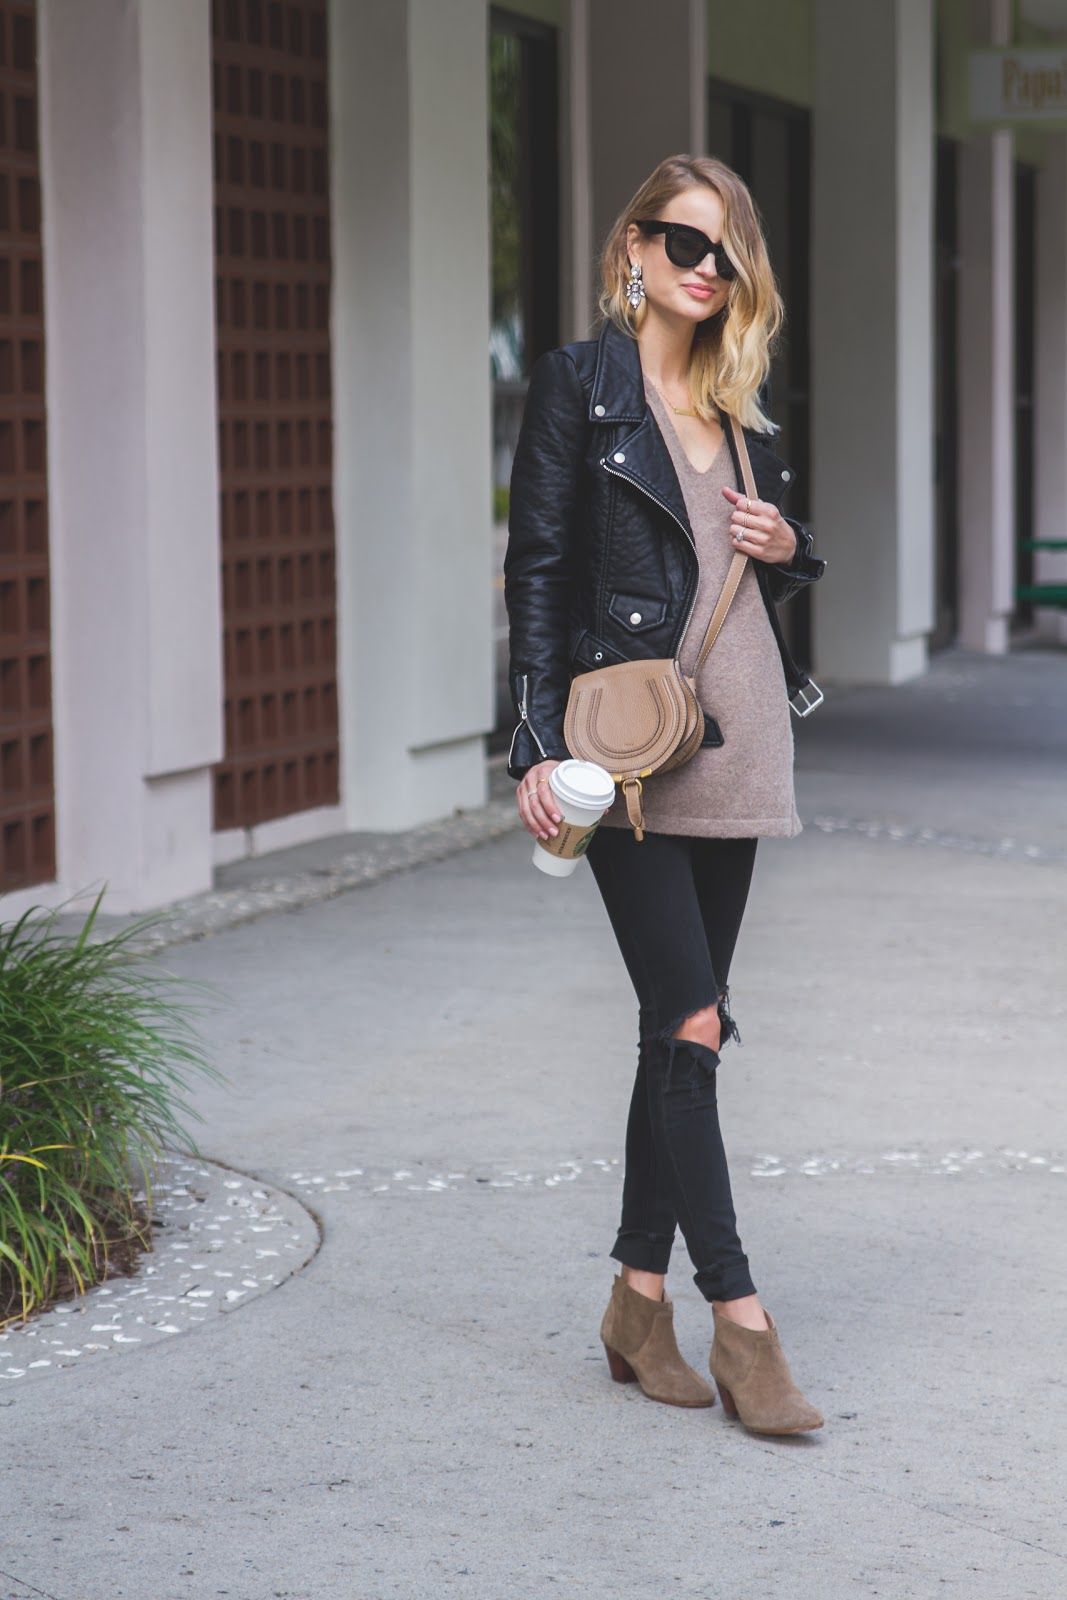 Little Blonde Book by Taylor Morgan | A Life and Style Blog ...